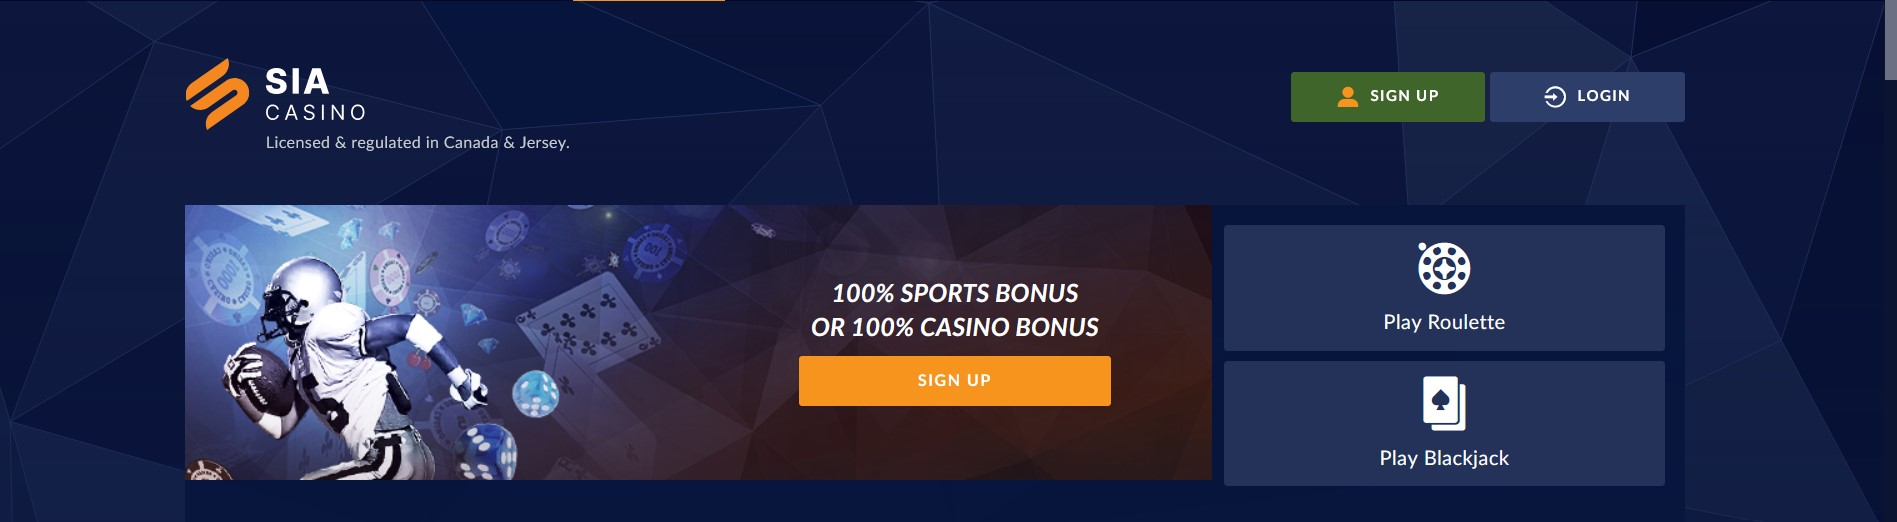 SIA Casino Website